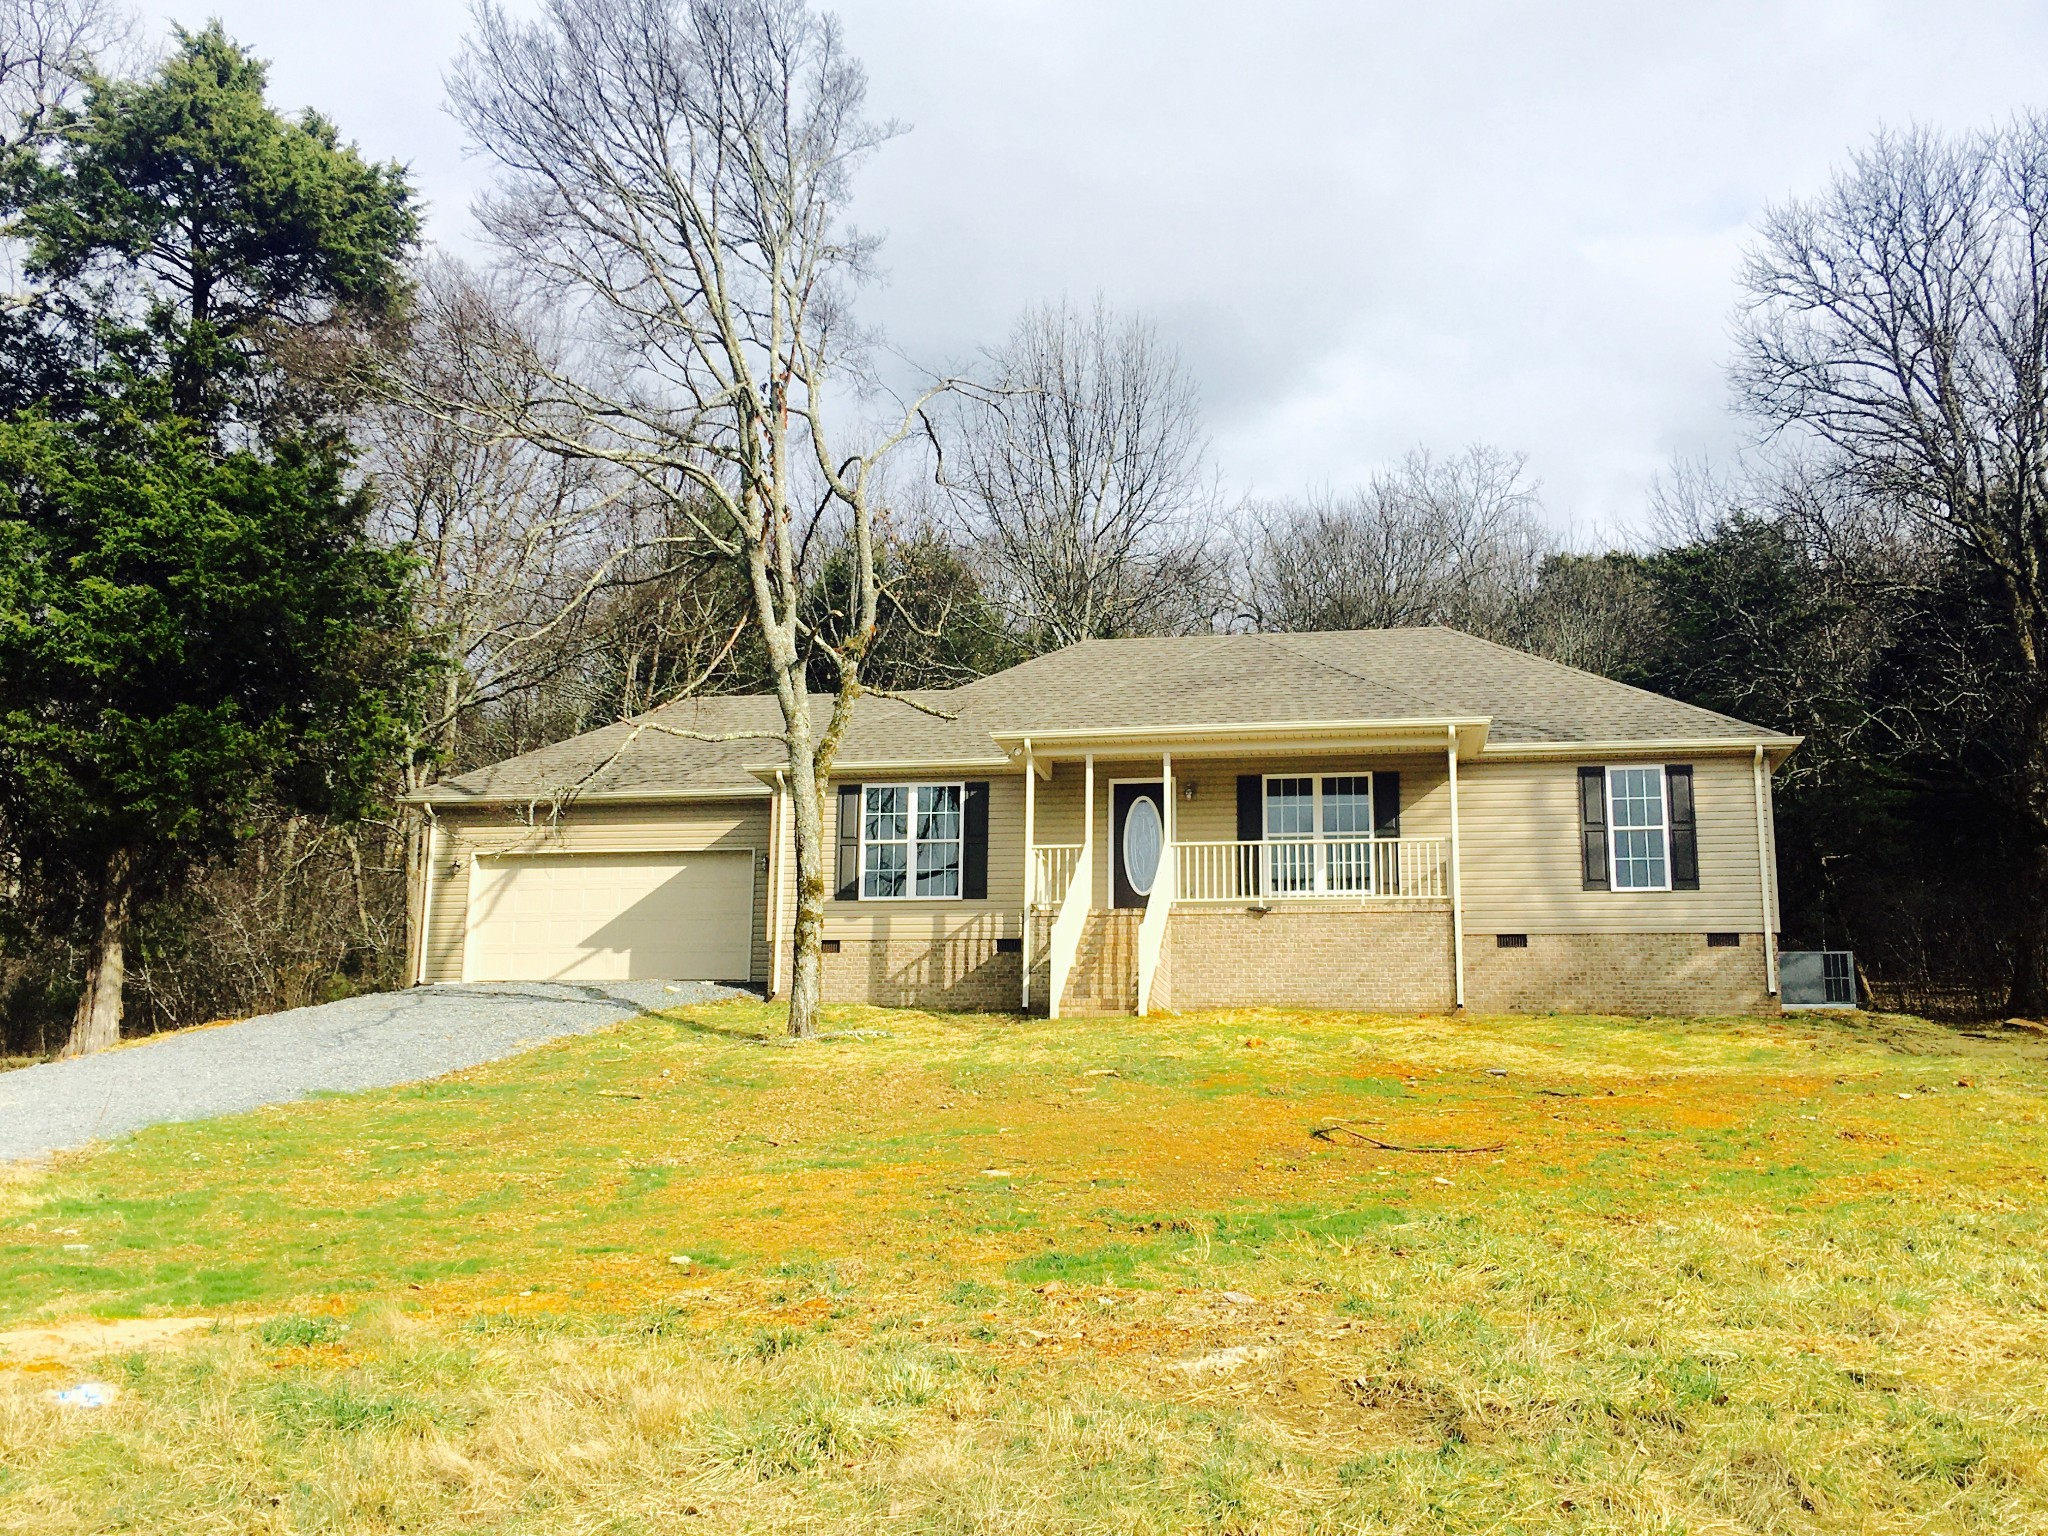 45 Cecil Johnson Rd, Mulberry, TN 37359 - Mulberry, TN real estate listing